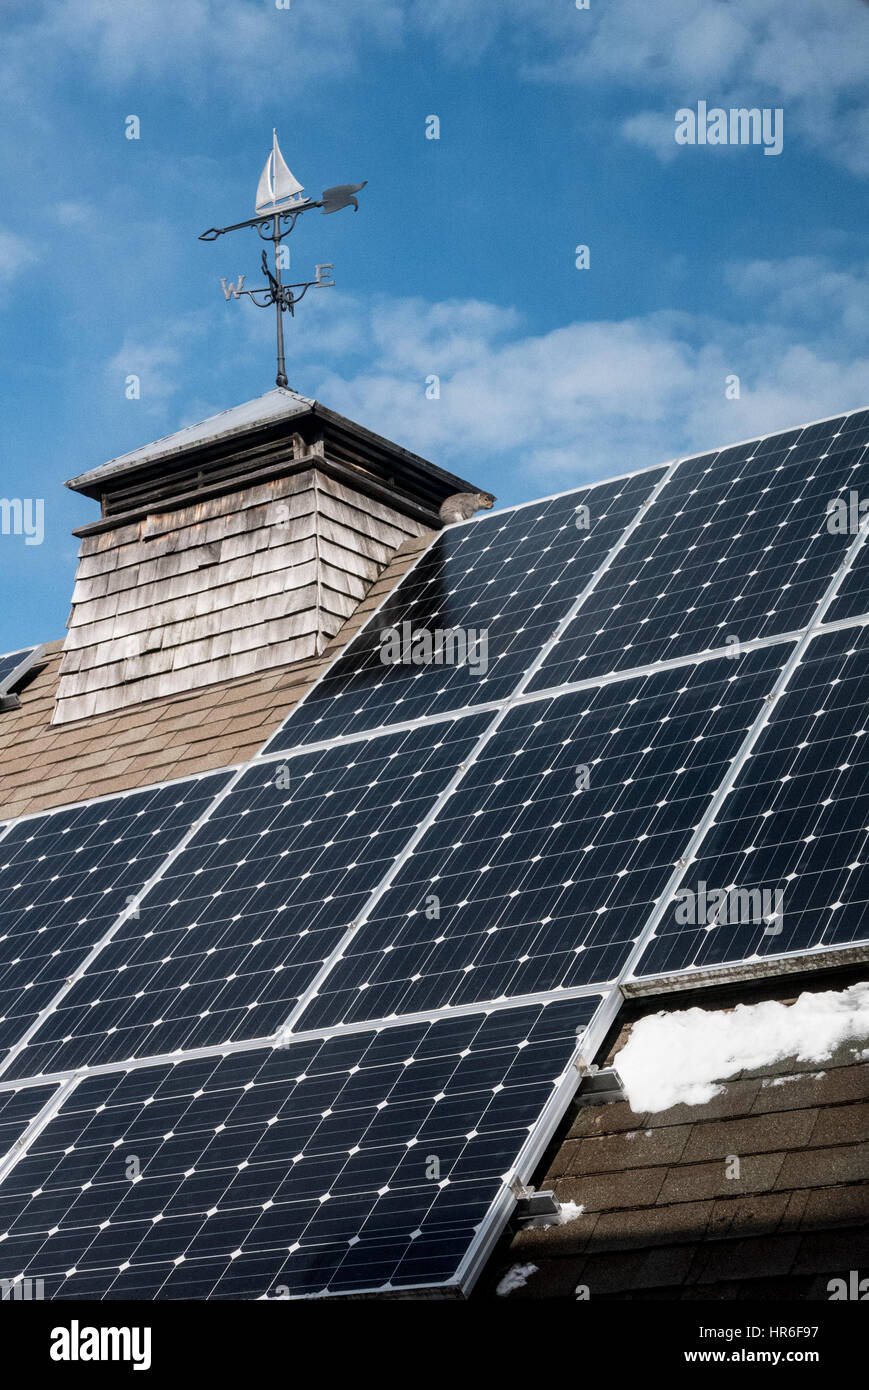 solar panels in winter with weather vane atop cupola - note squirrel next to cupola on roofline - Stock Image